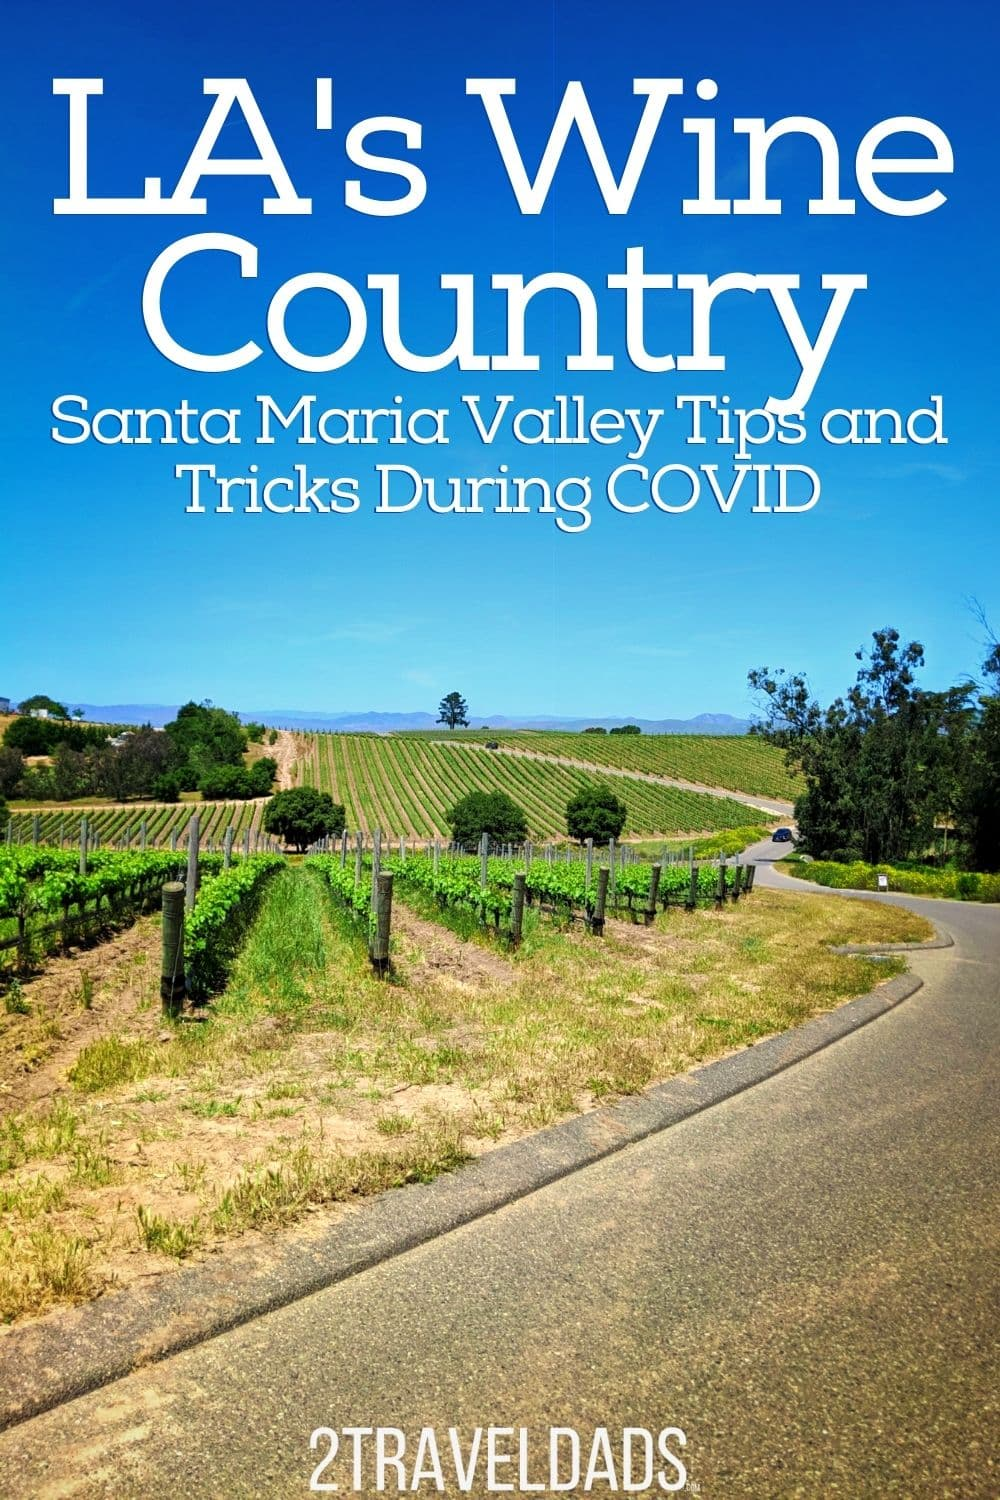 The Santa Maria Valley wine country is one of our favorite wine regions. During the COVID pandemic, LA's wine country is still open with precautions and new wine experiences. See hot to visit SMV wine country RIGHT NOW!